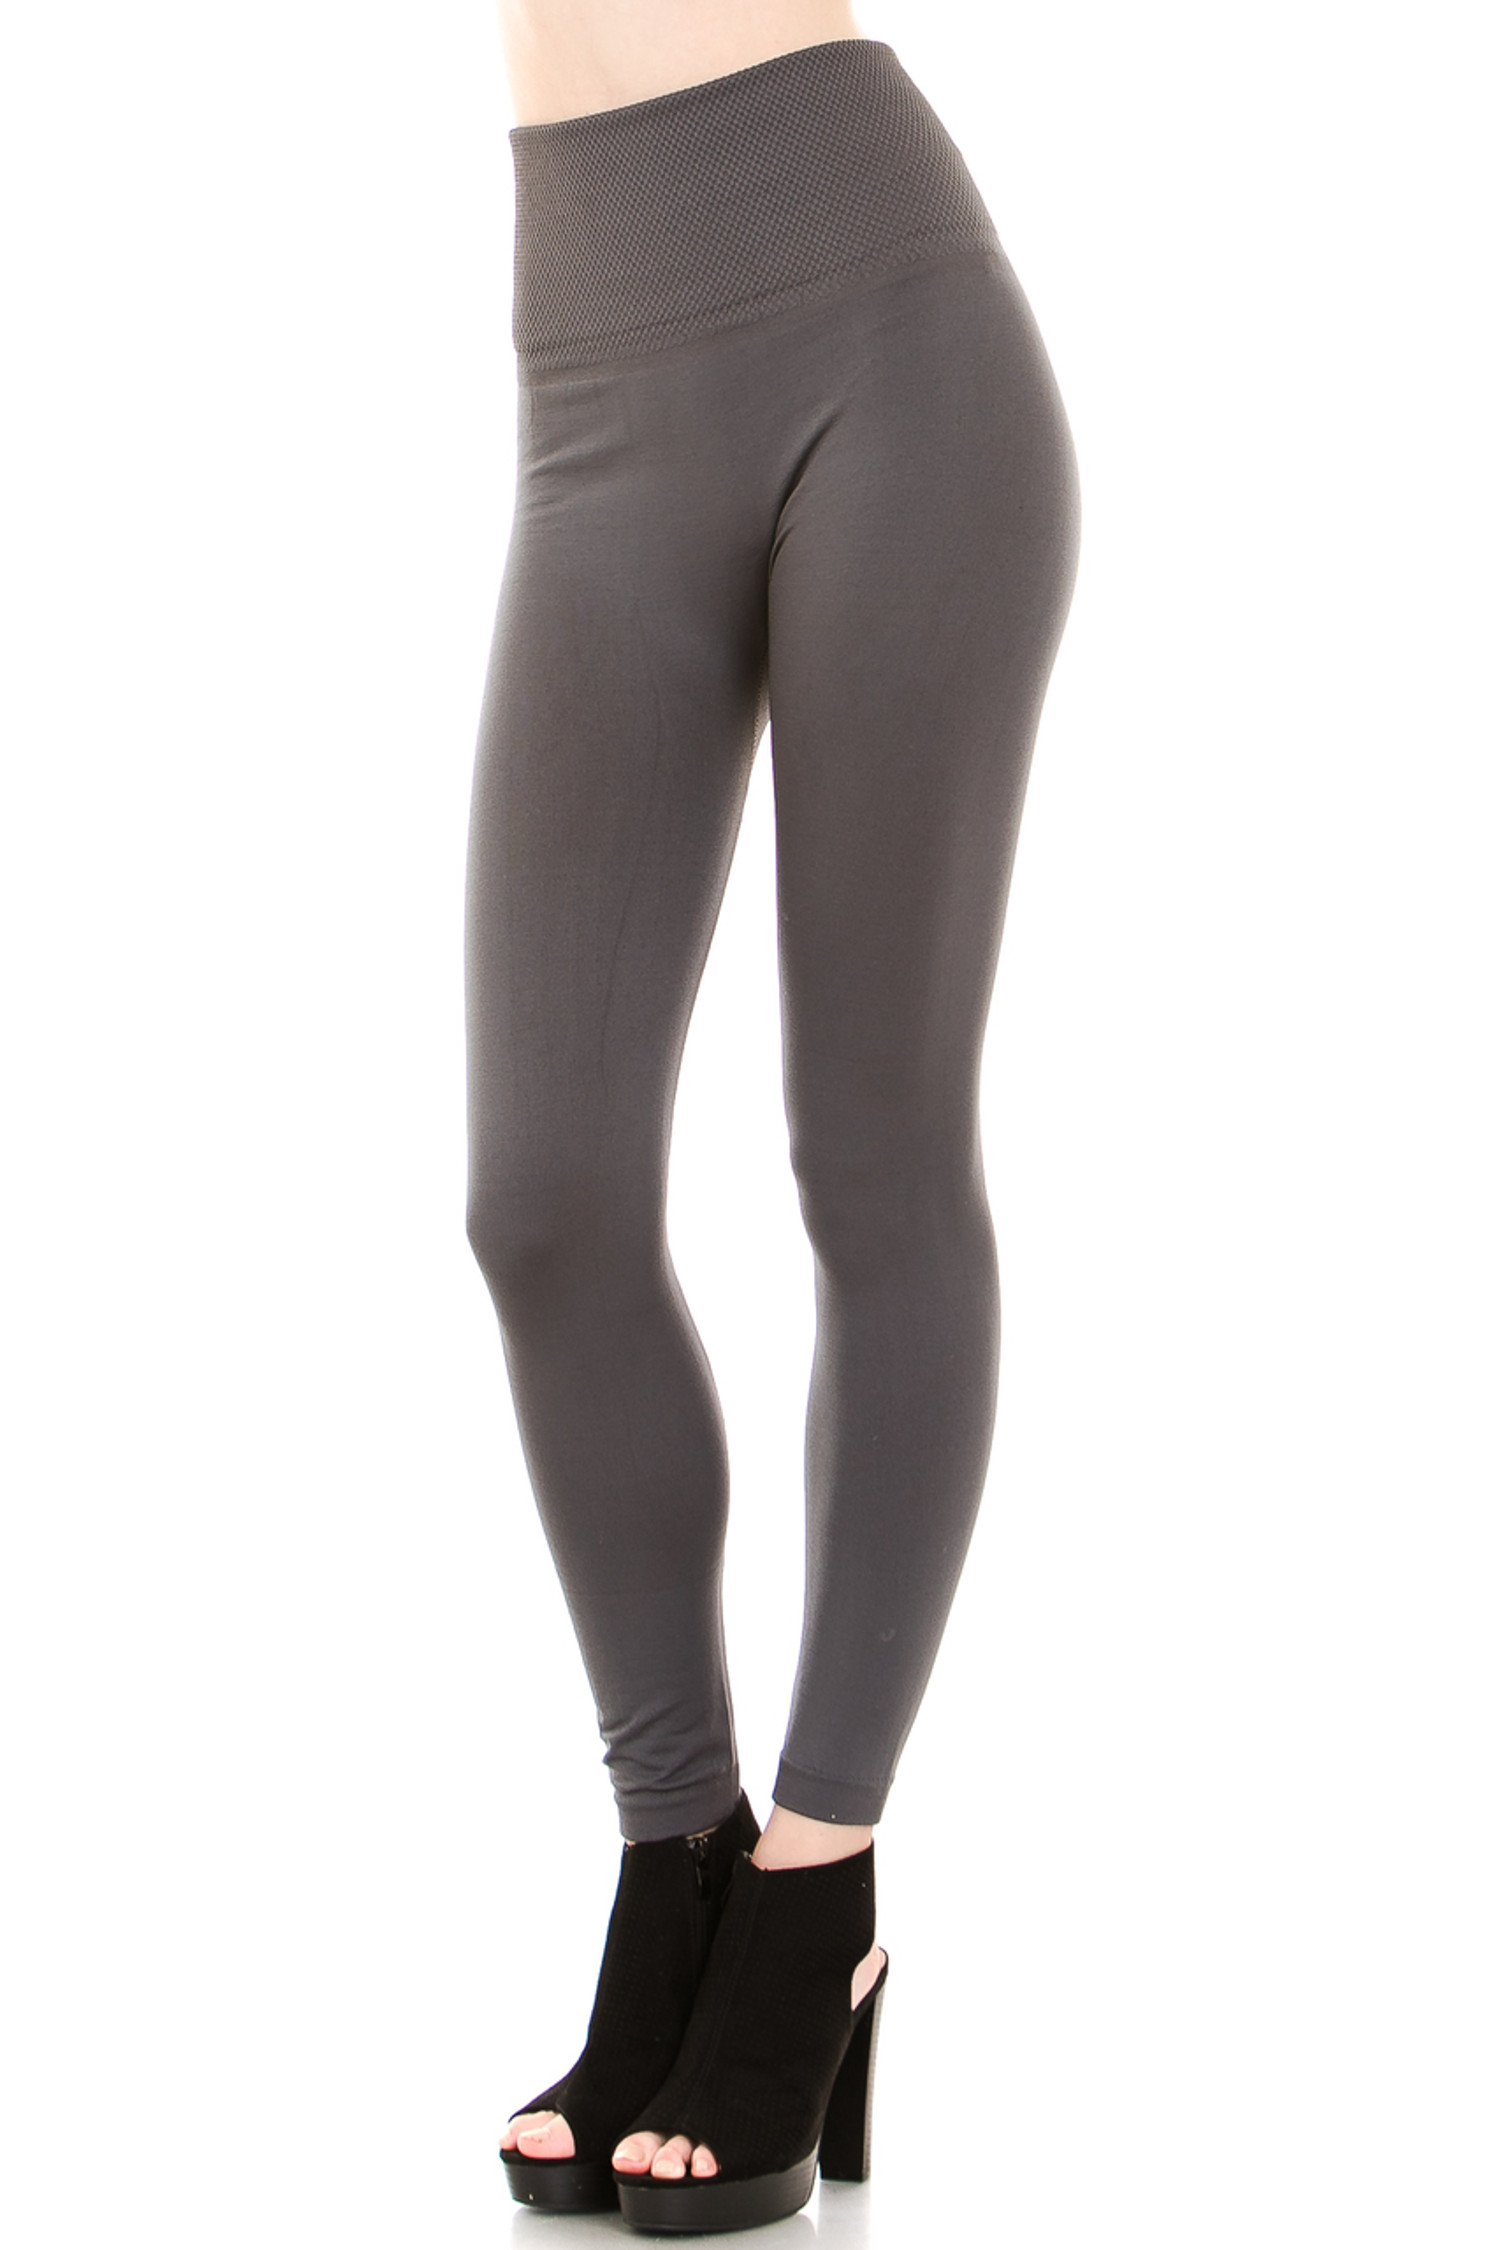 45 degree image of our Charcoal Banded High Waisted Fleece Lined Leggings showing the ribbed high waisted fabric waist band and full length Charcoal fleece legging